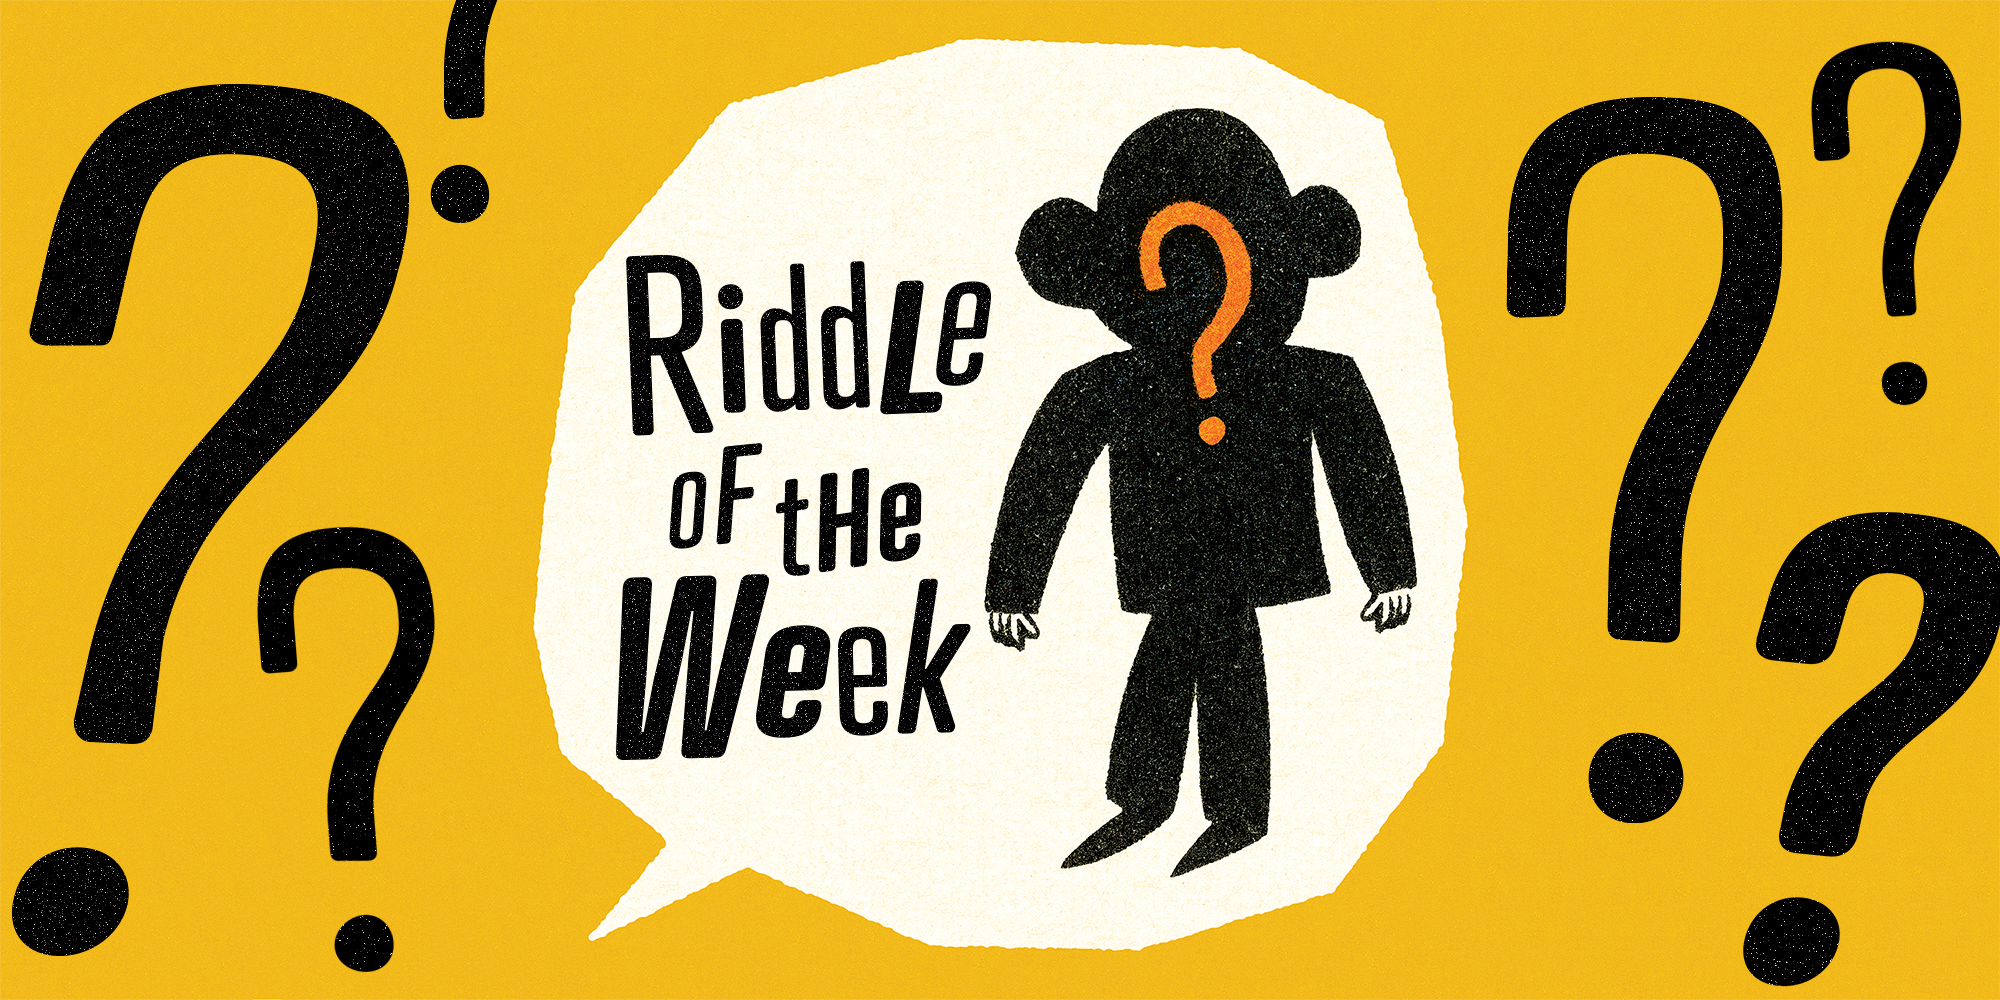 Solution to Riddle of the Week: The Circuit Breaker Riddle